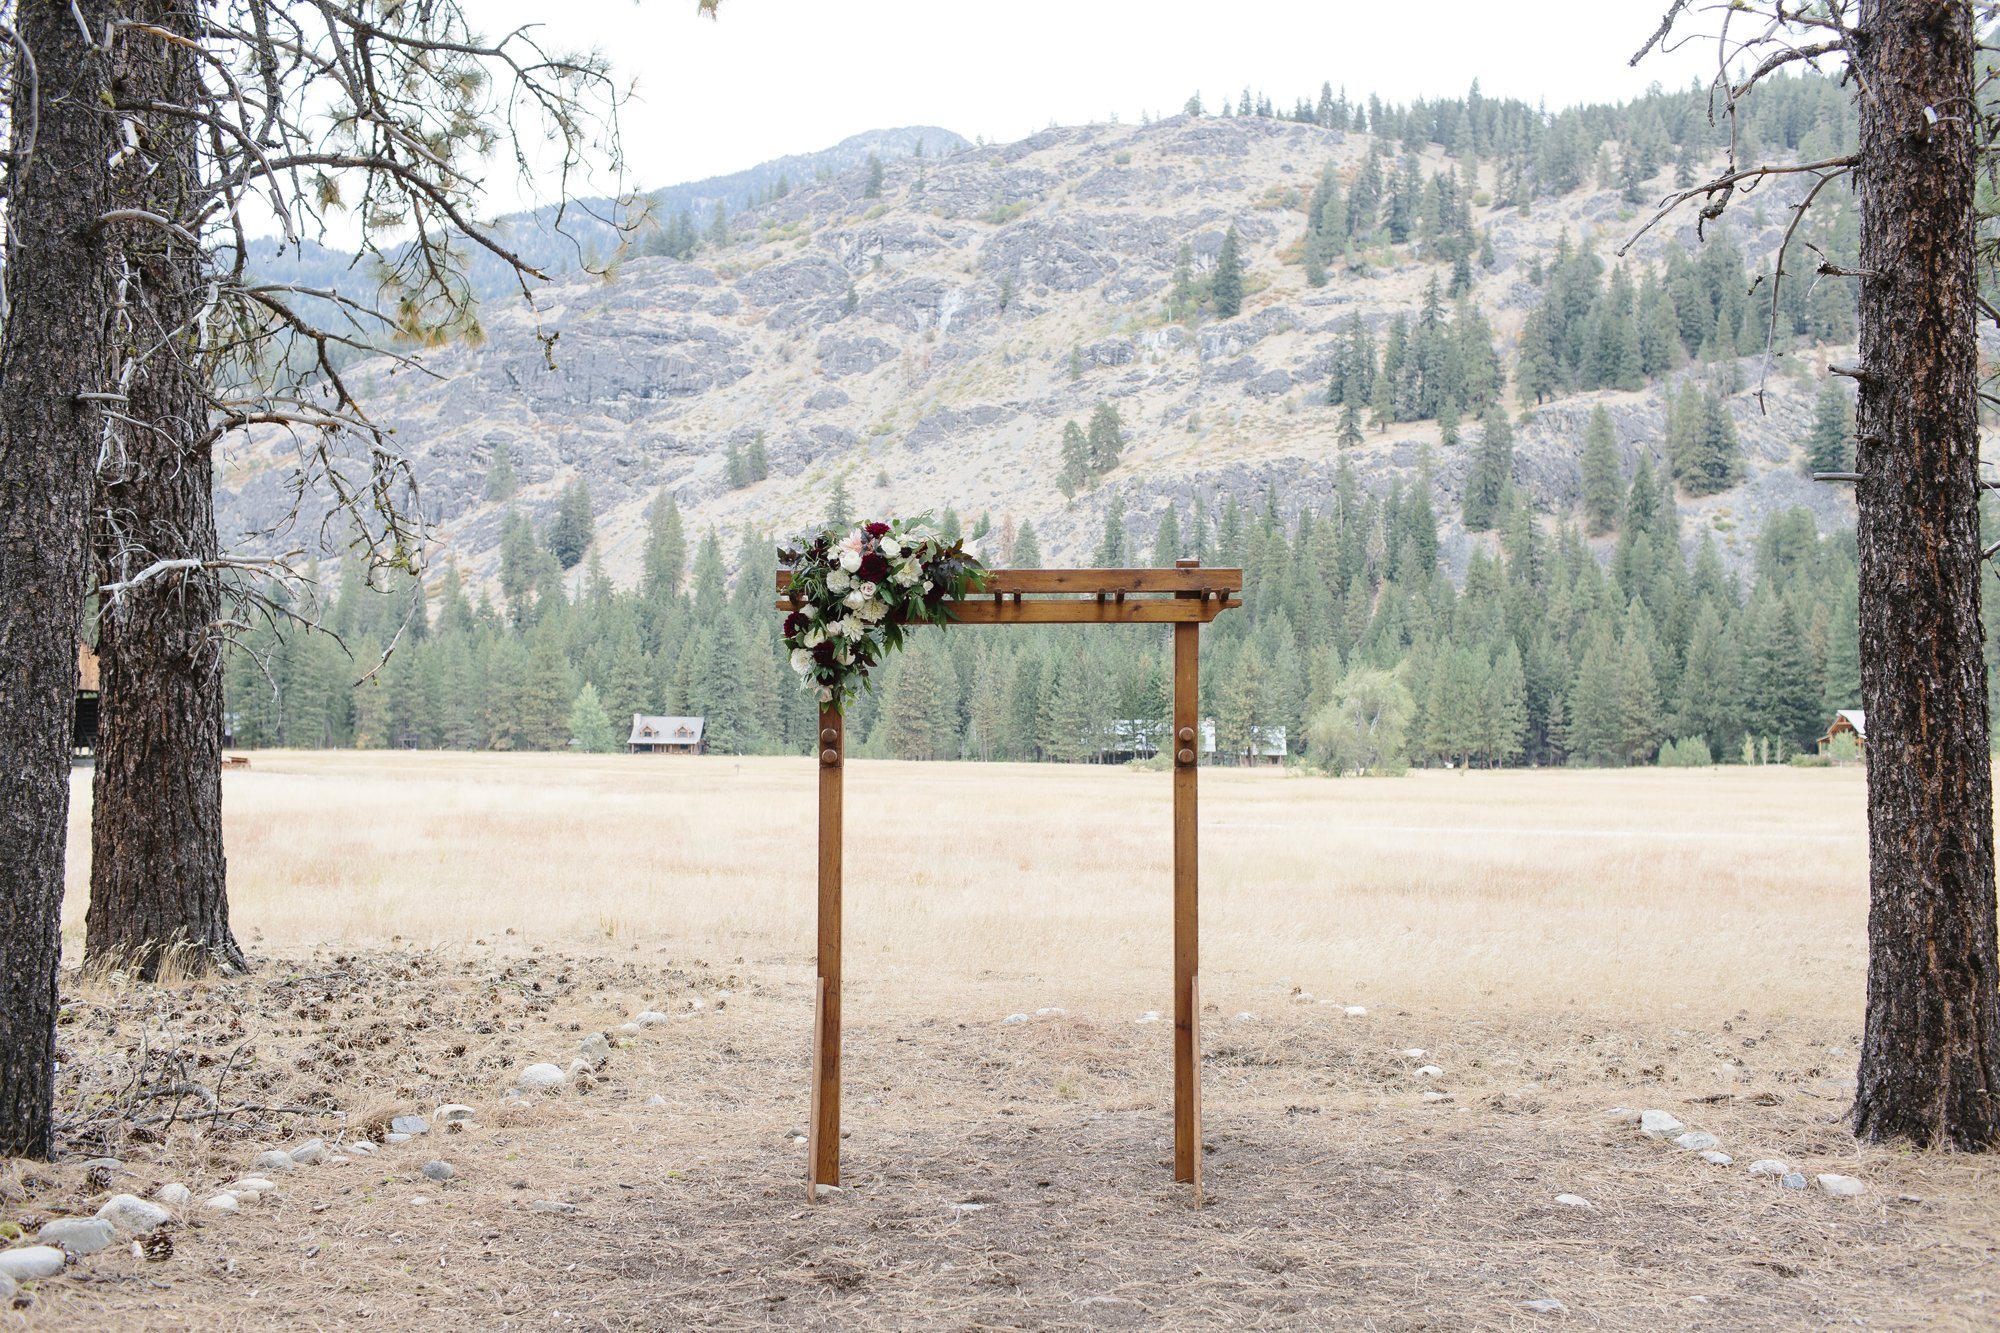 Rustic and classic wedding decor for an outdoor wedding